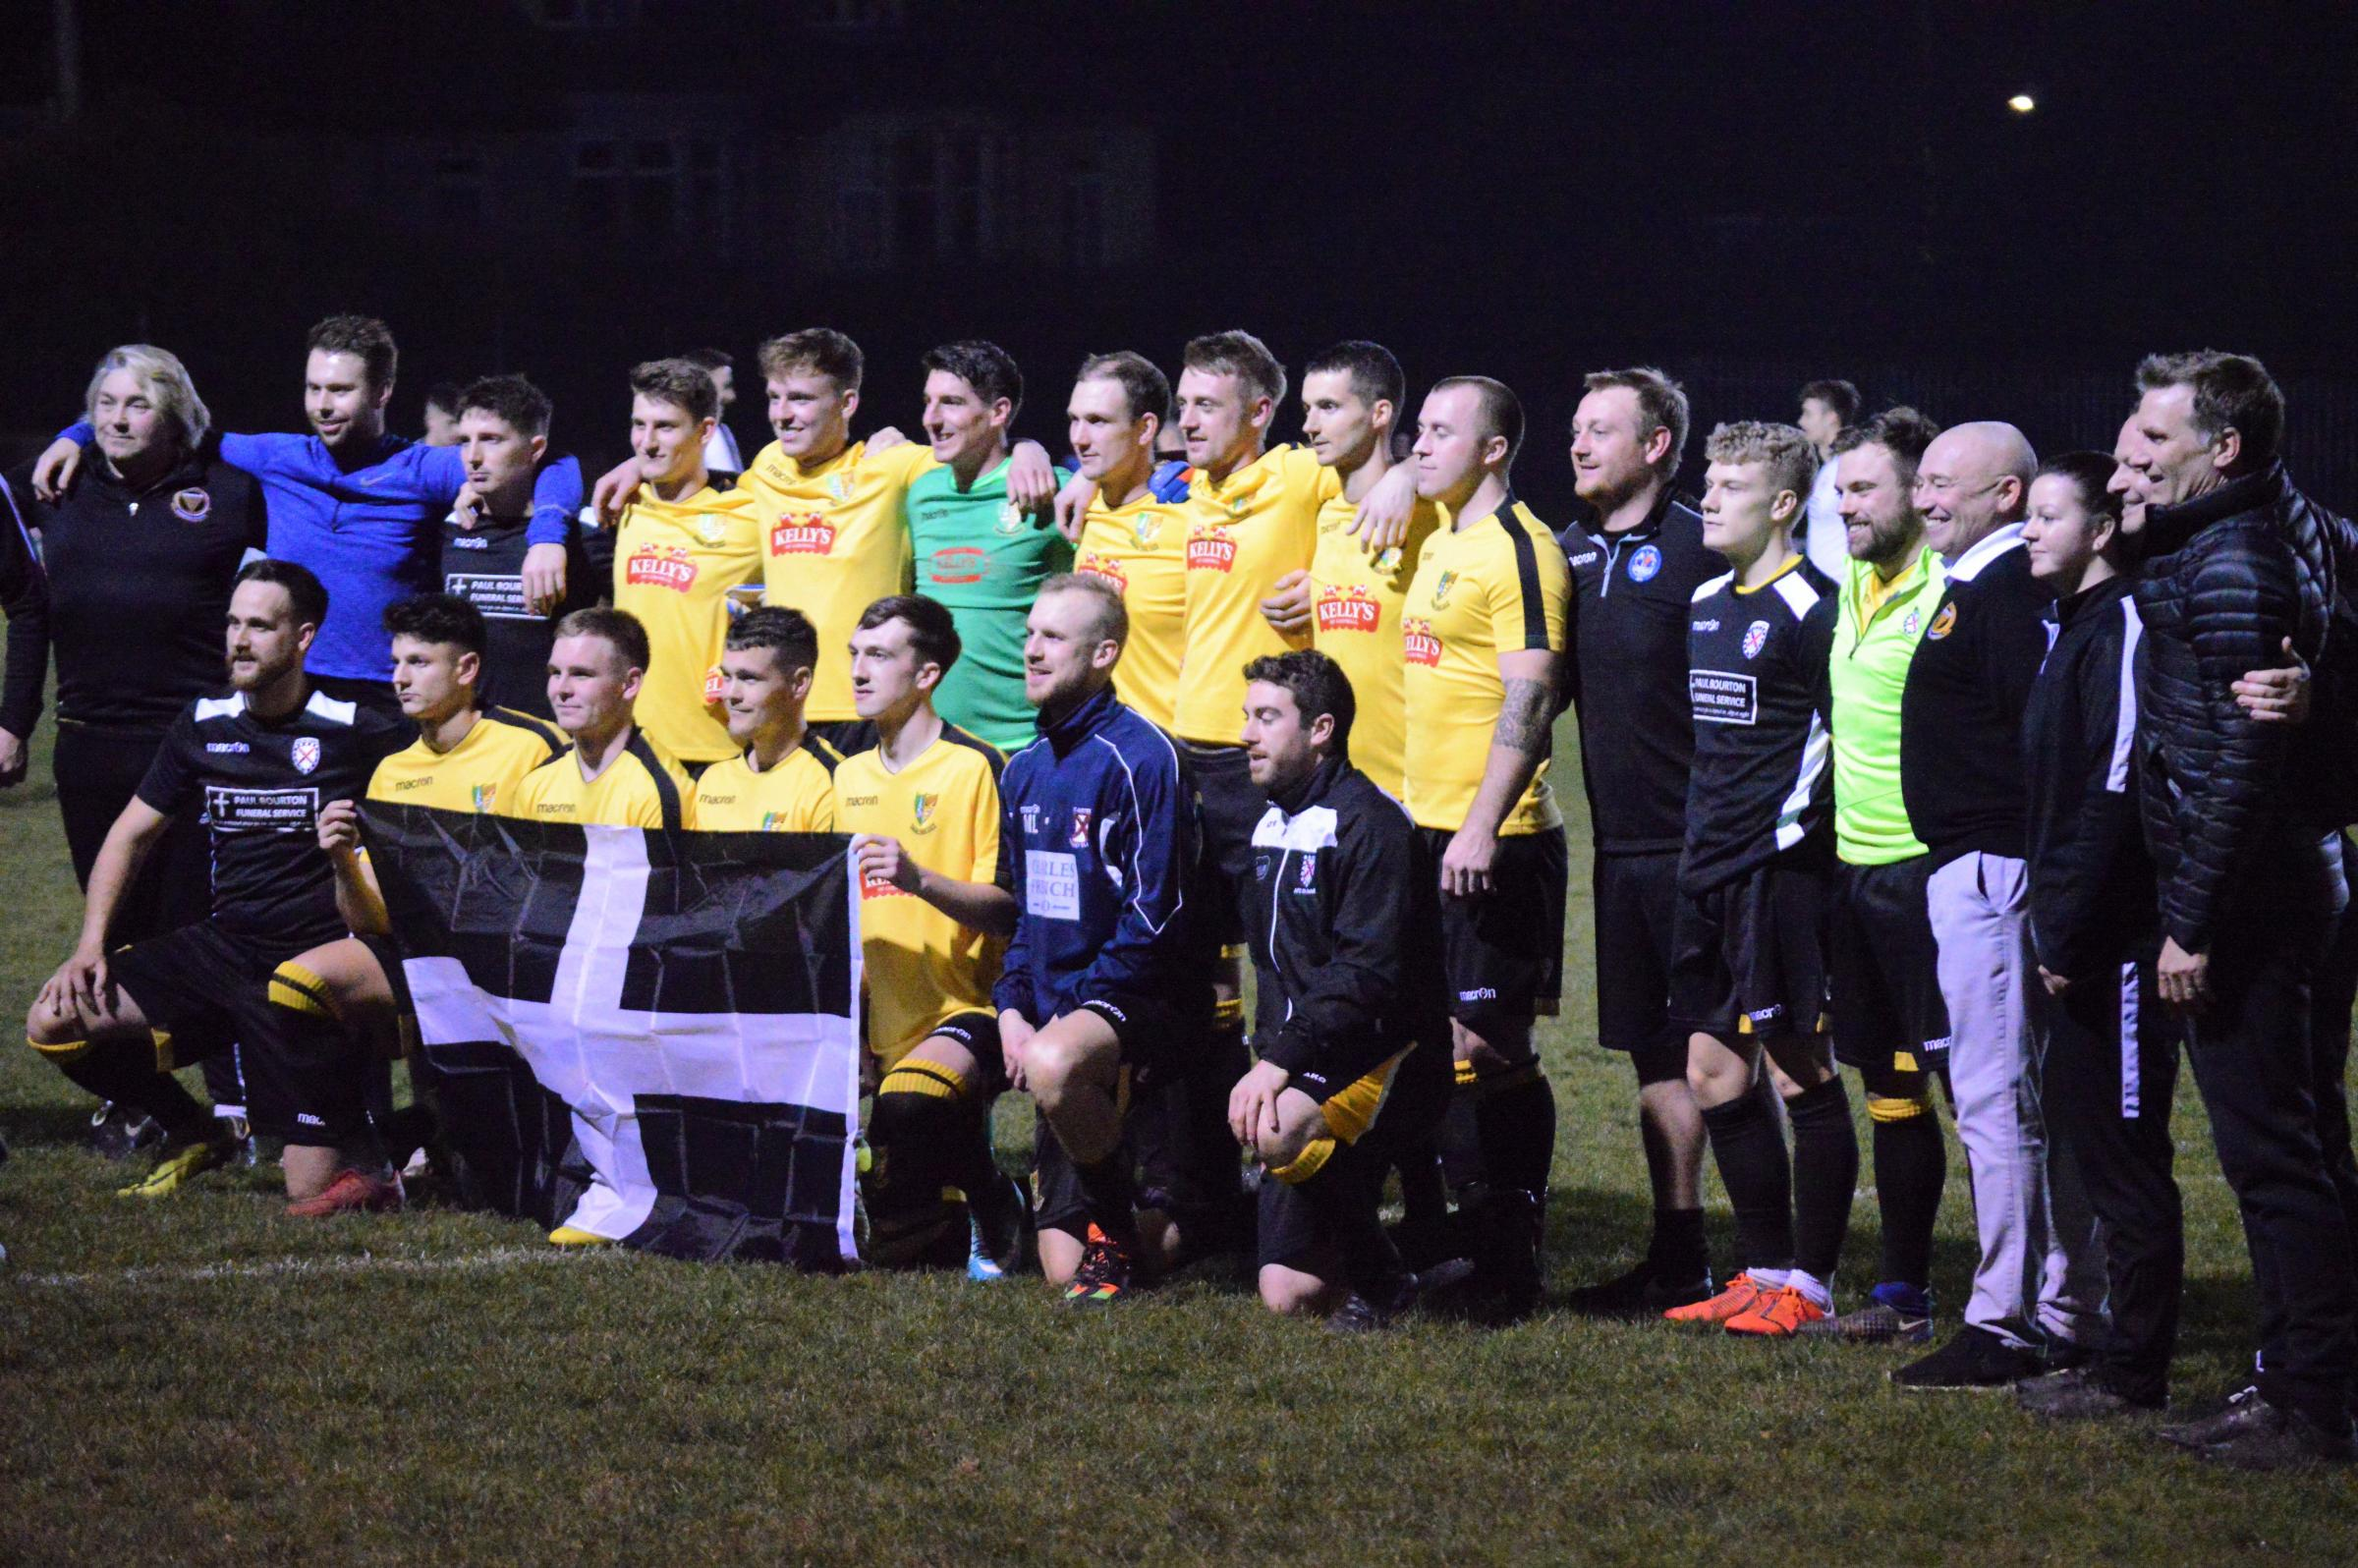 Members of the Kernow Football Alliance prior to kick-off on Monday night